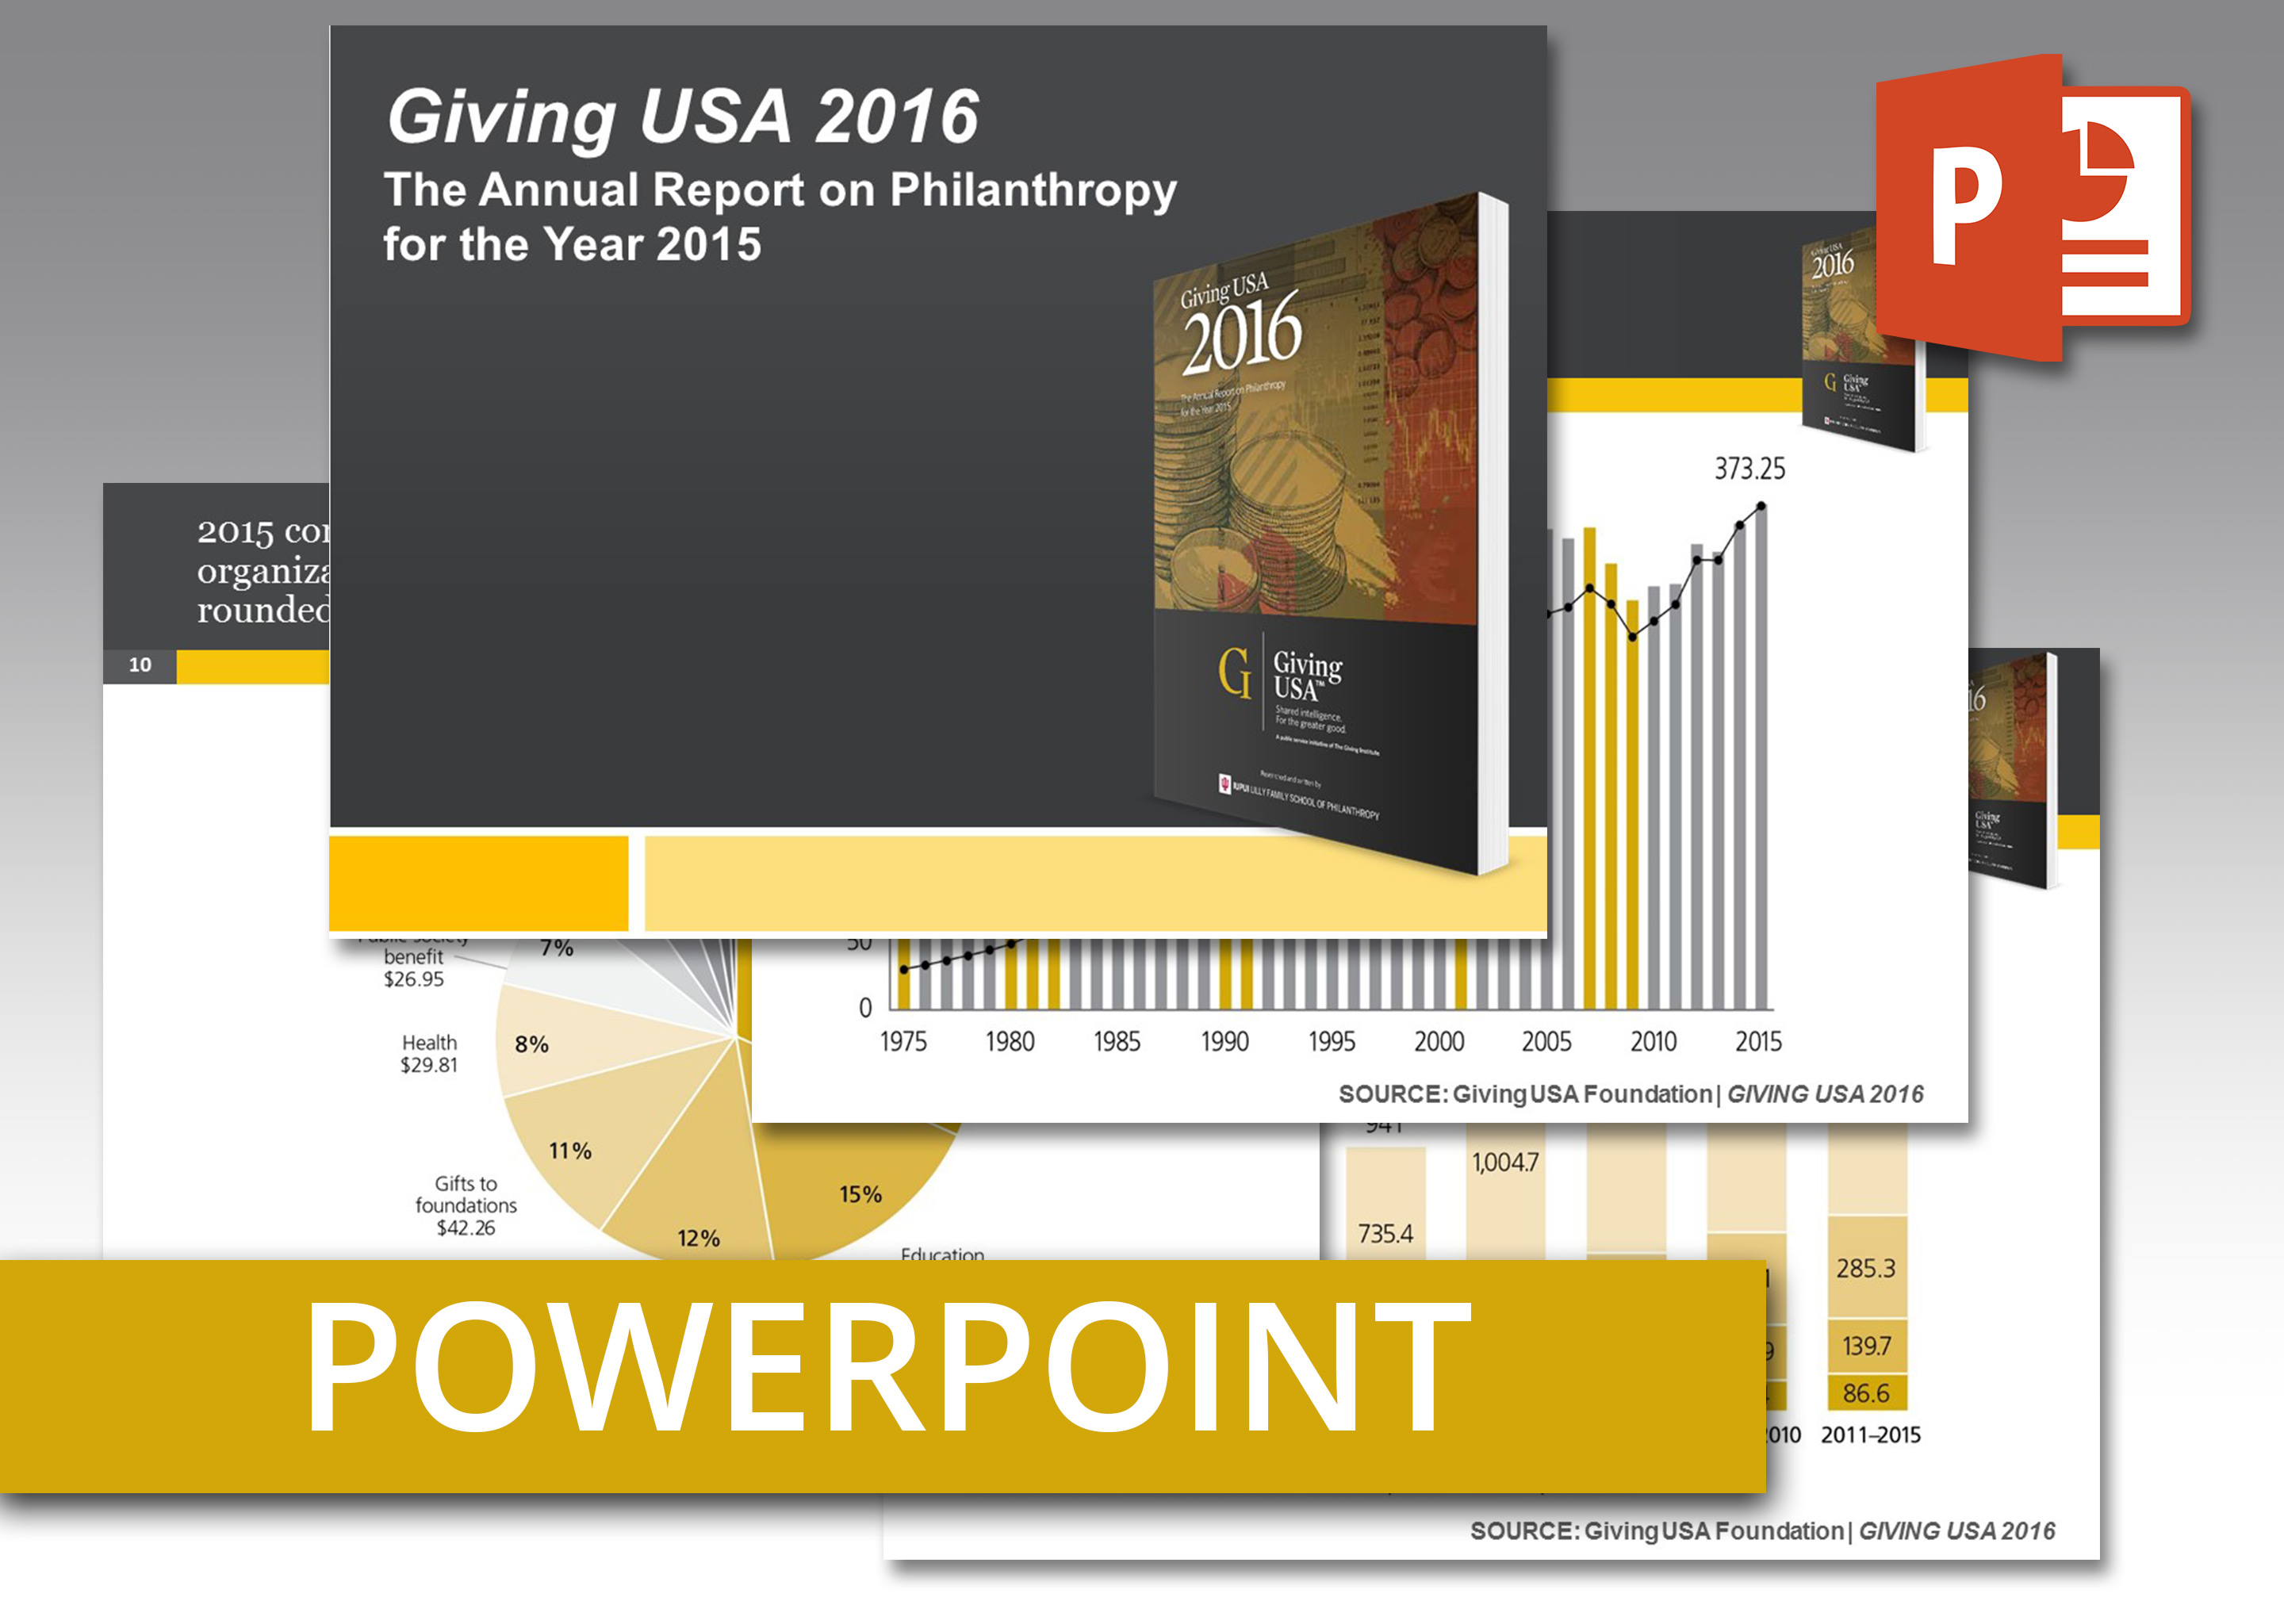 Coolmathgamesus  Personable Giving Usa  Powerpoint An Easytouse Presentation Of Report  With Remarkable Giving Usa  Powerpoint An Easytouse Presentation Of Report Findings Including Talking Points With Nice How To Make A Powerpoint Presentation Without Powerpoint Also Millionaire Powerpoint Template In Addition Powerpoint Break Timer And Fonts Powerpoint As Well As Matrix In Powerpoint Additionally Organization Chart In Powerpoint  From Givingusaorg With Coolmathgamesus  Remarkable Giving Usa  Powerpoint An Easytouse Presentation Of Report  With Nice Giving Usa  Powerpoint An Easytouse Presentation Of Report Findings Including Talking Points And Personable How To Make A Powerpoint Presentation Without Powerpoint Also Millionaire Powerpoint Template In Addition Powerpoint Break Timer From Givingusaorg